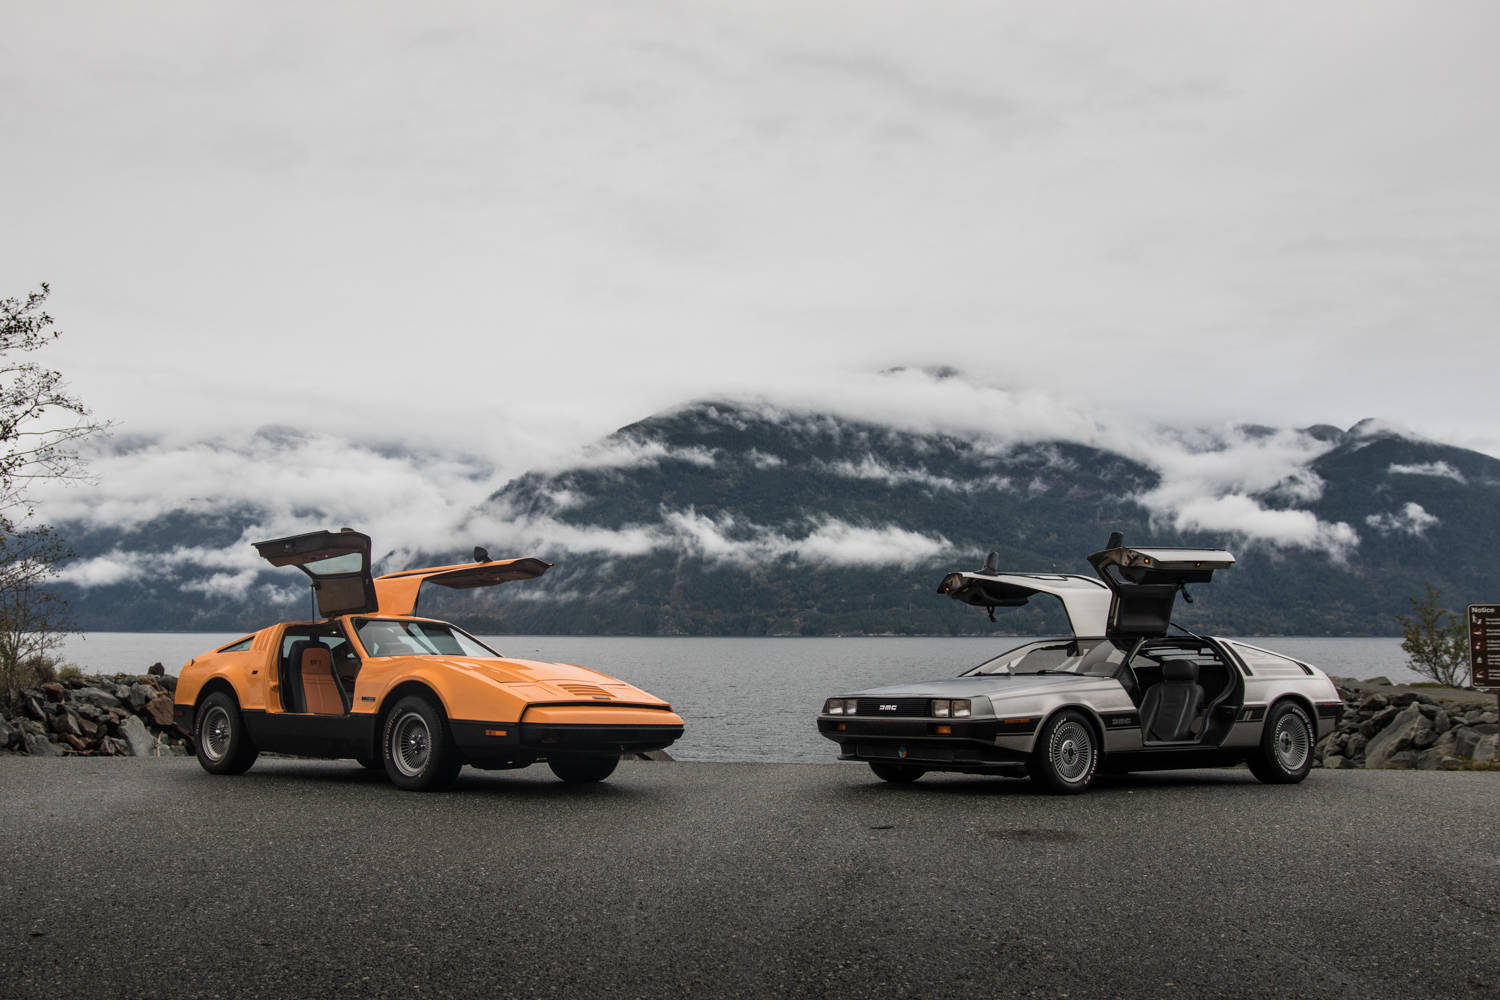 DeLorean DMC-12 vs Bricklin SV1 mountain